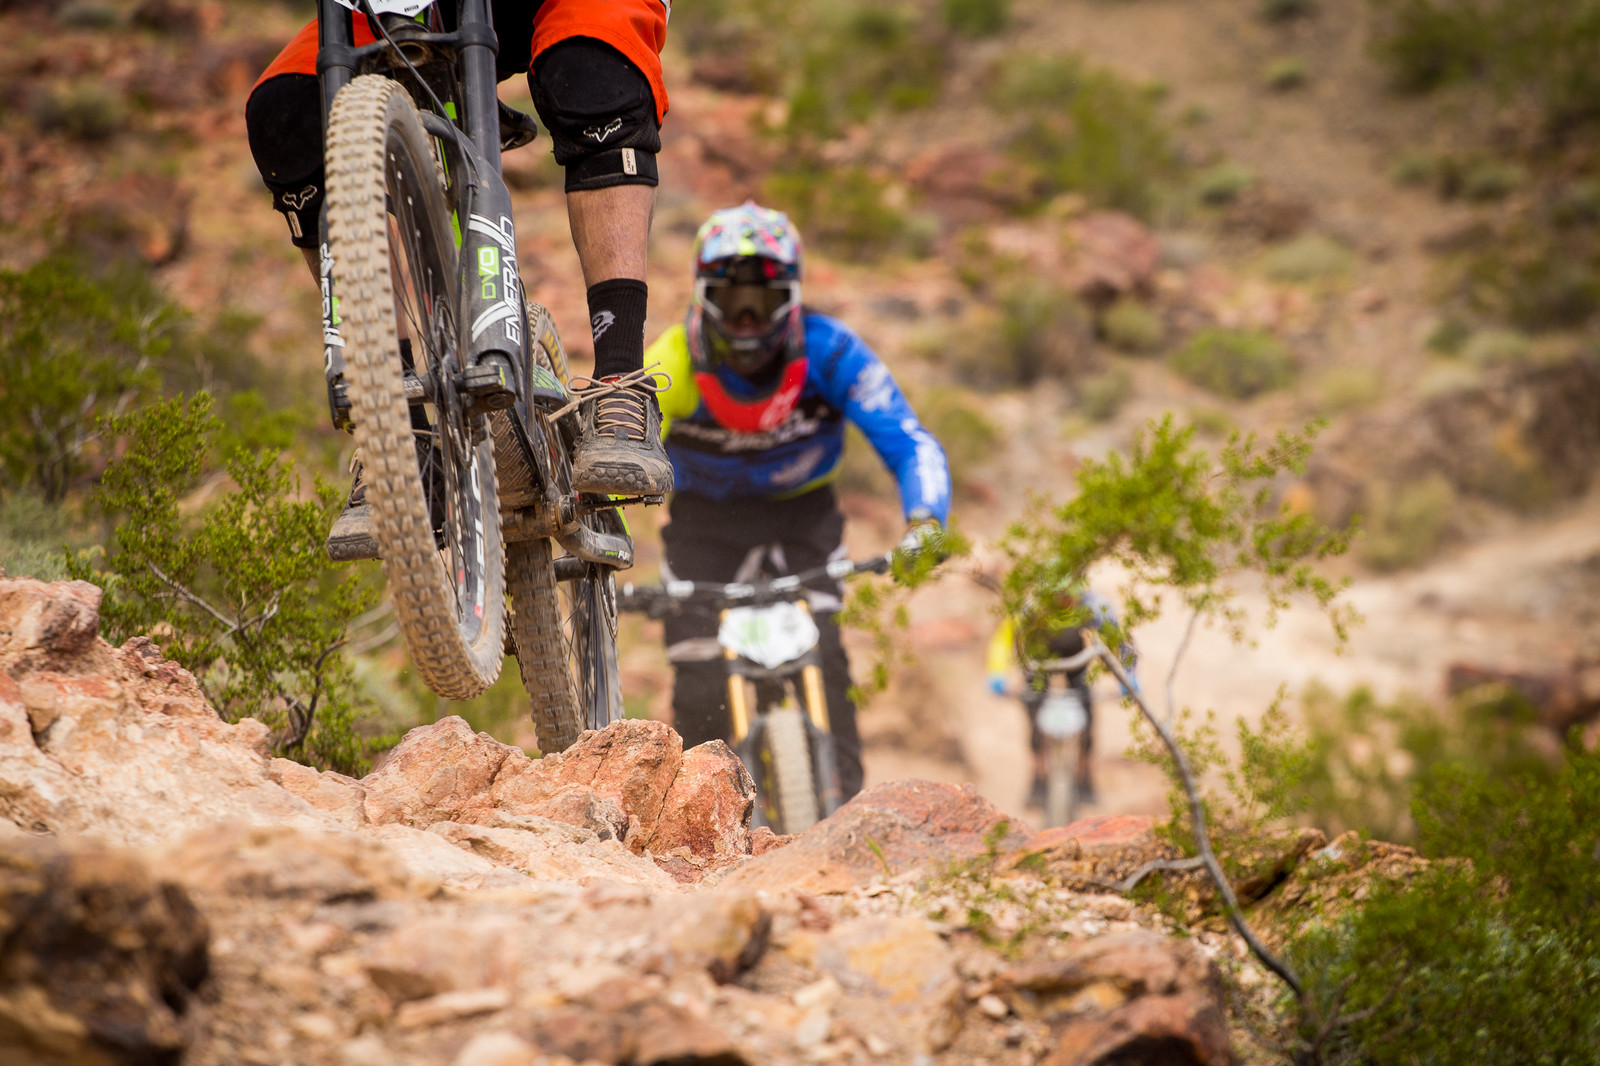 2017 Reaper Madness DH at Bootleg Canyon-53 - 2017 Reaper Madness DH Photos - Mountain Biking Pictures - Vital MTB